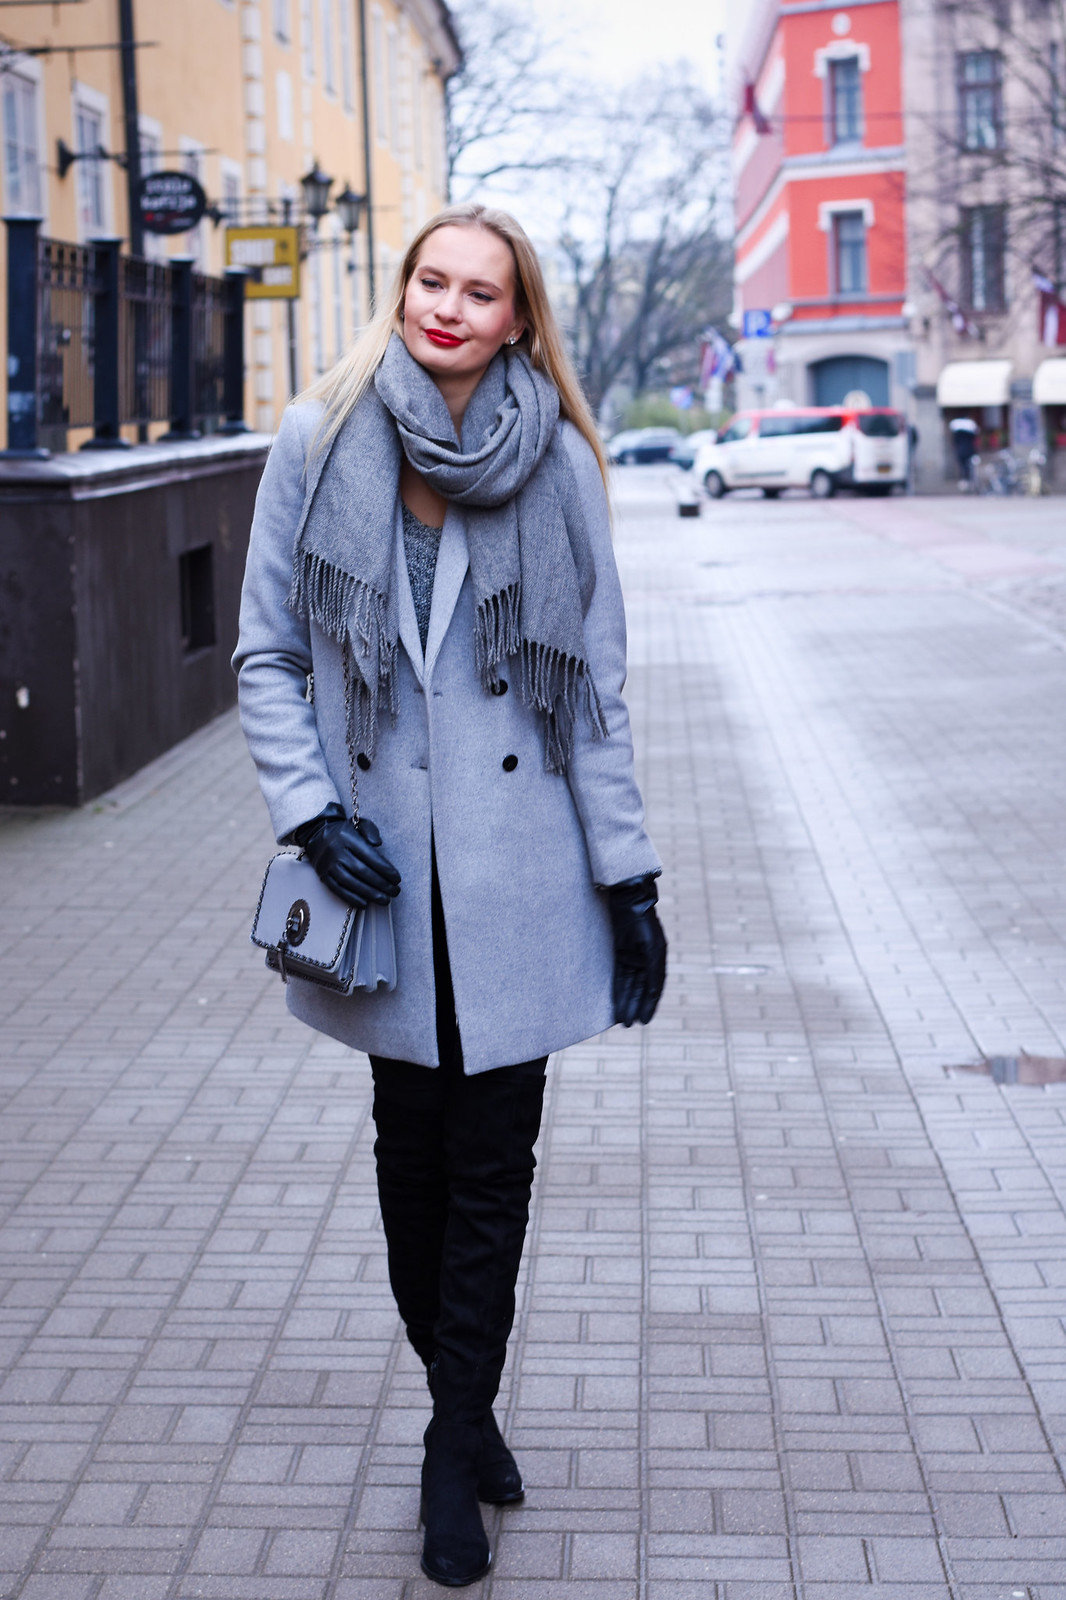 Styling a grey Zara coat